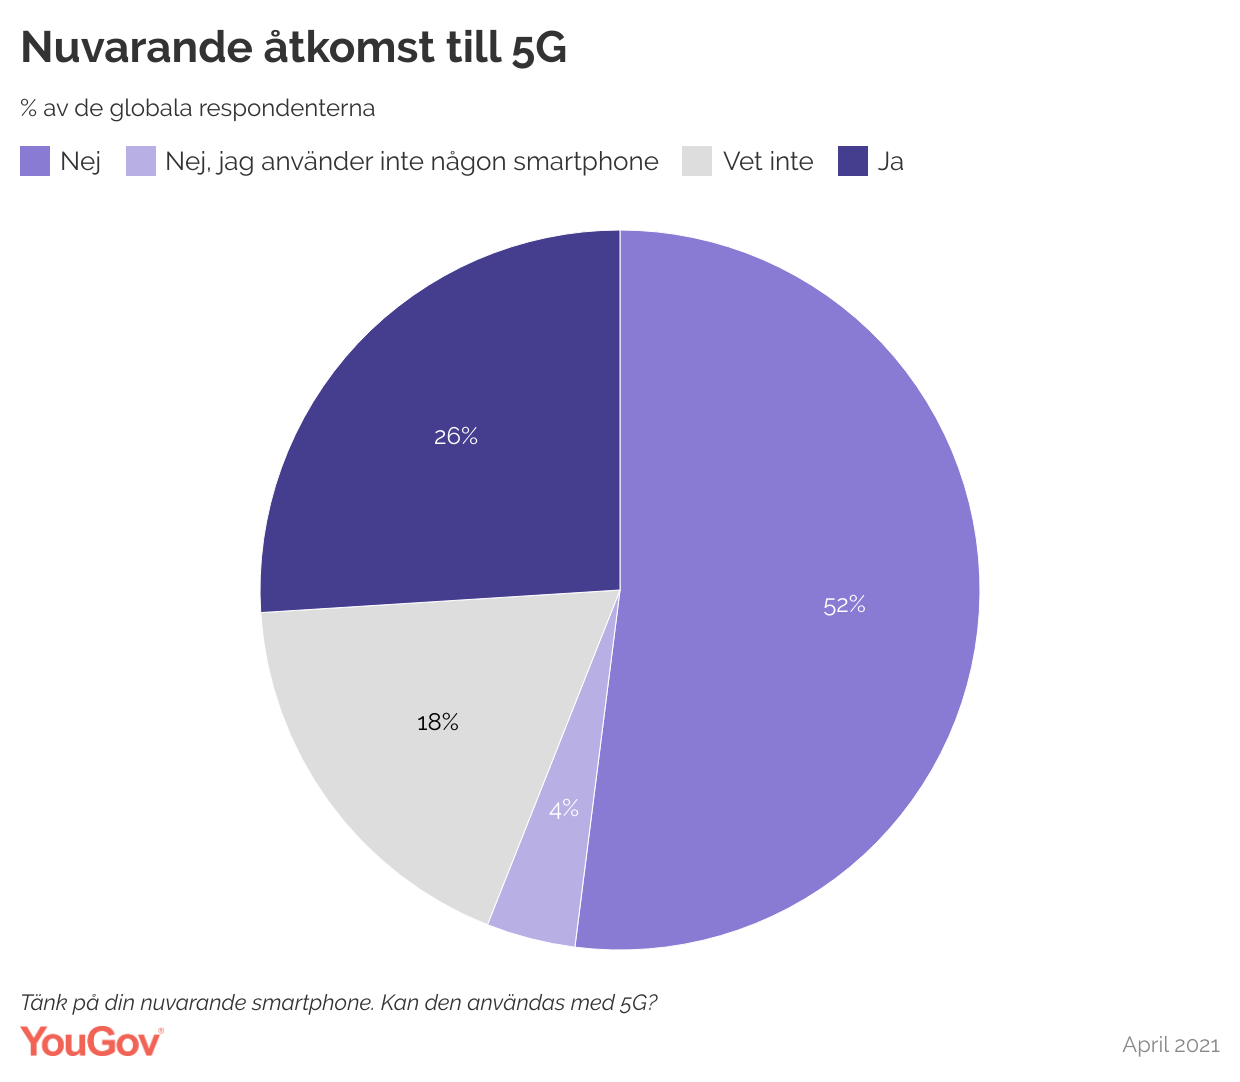 5G enablement